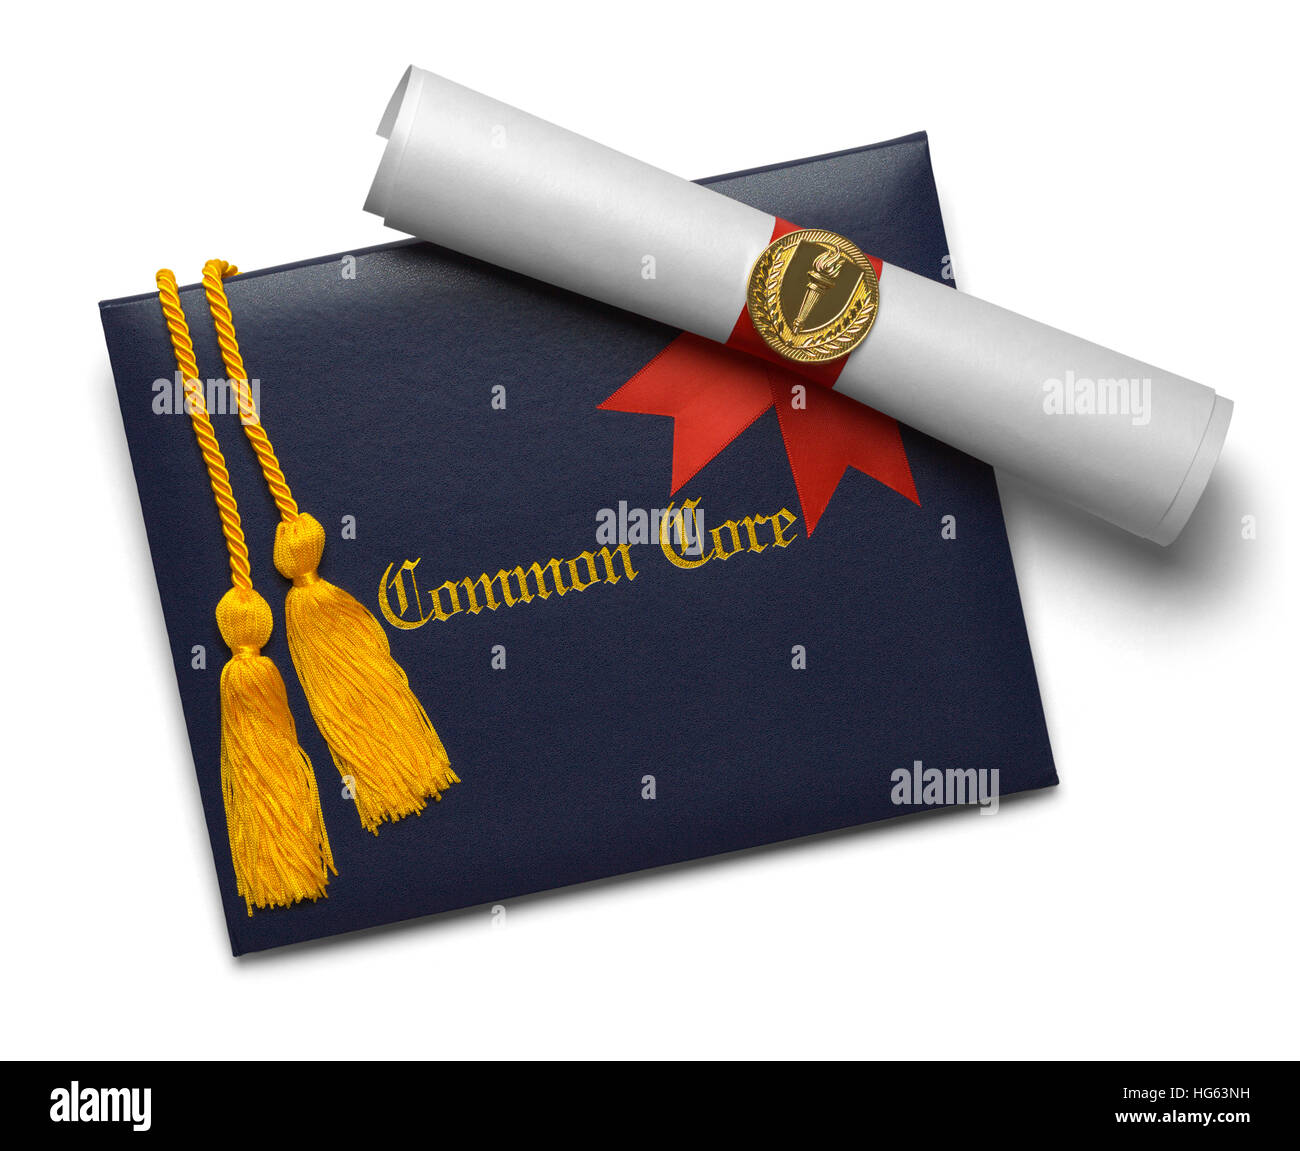 Common Core Diploma of Graduation Cover with Degree Scroll and Torch Medal with Honor Cords Isolated on White Background. - Stock Image